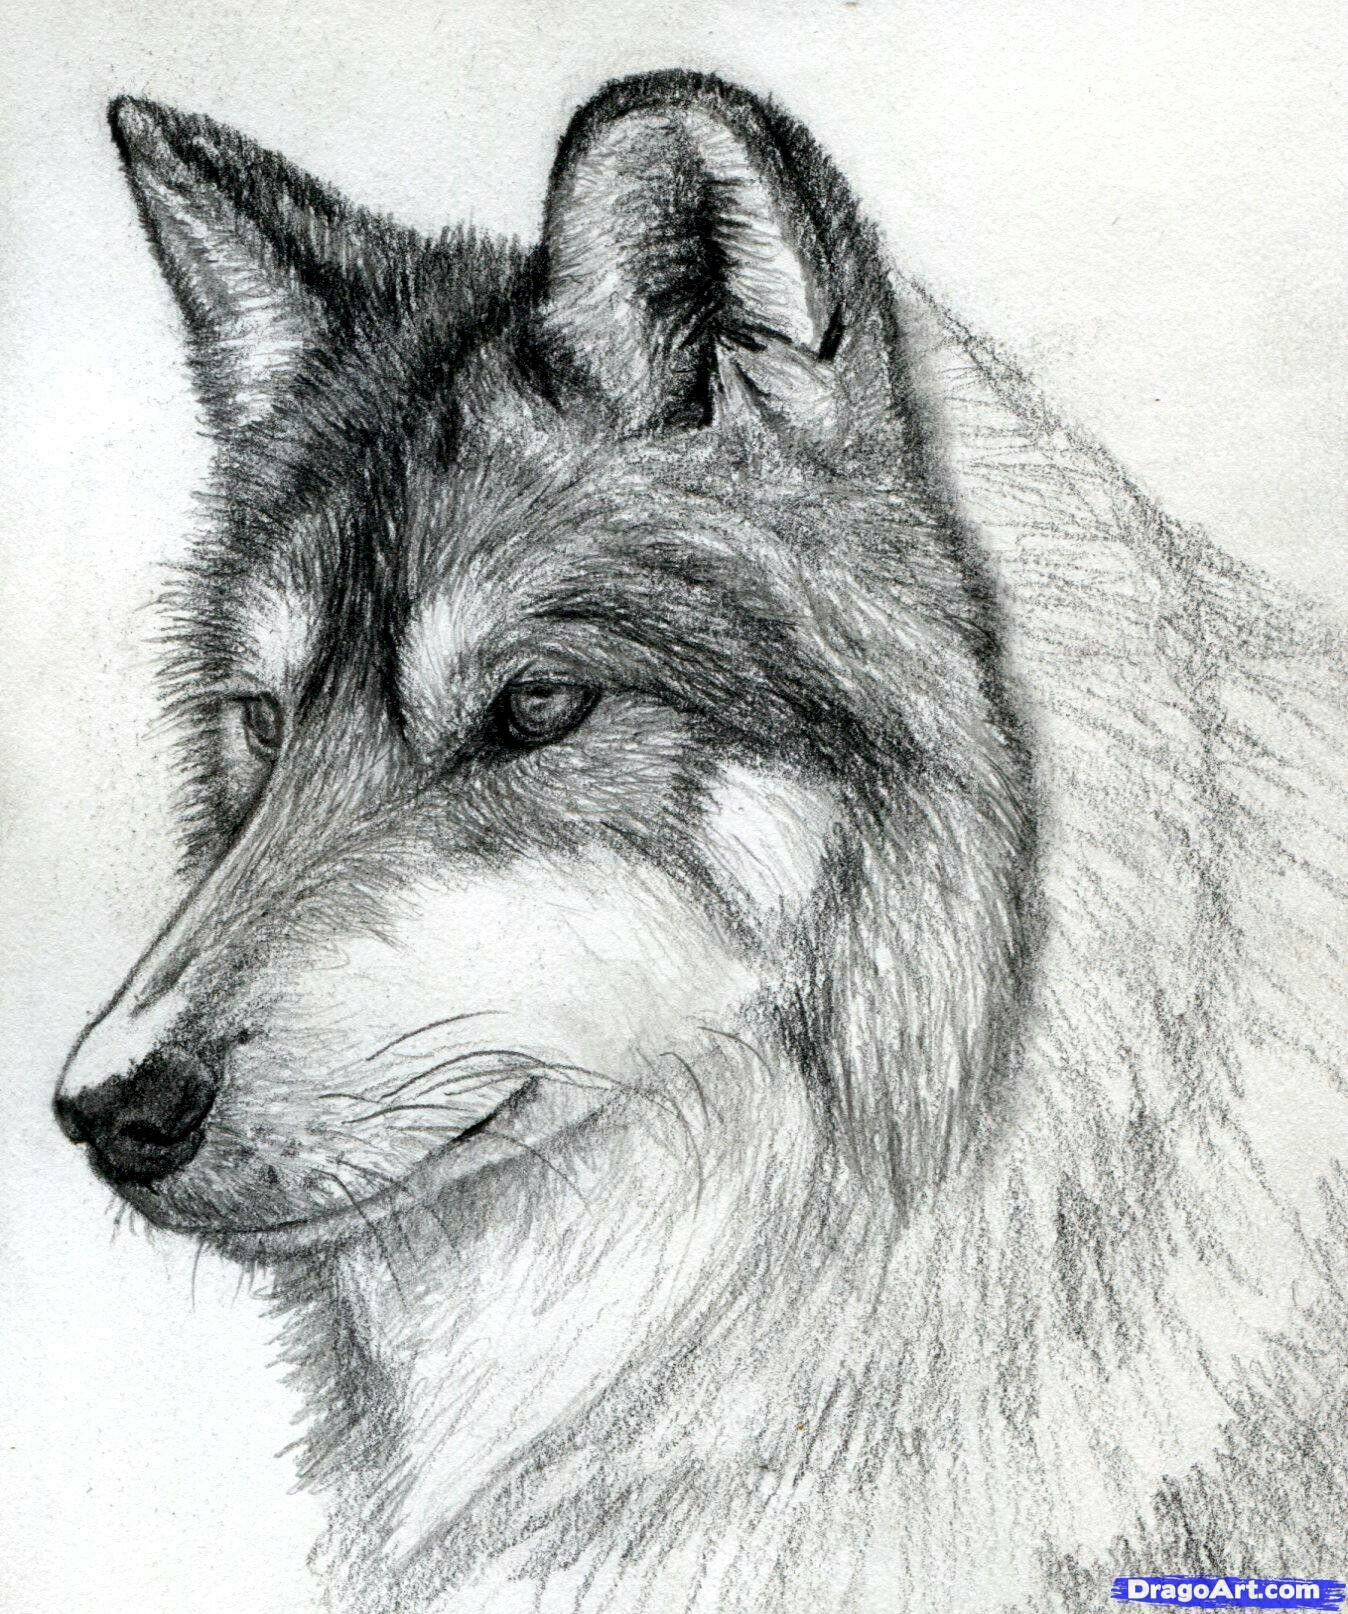 Pin By Hefereja On To Draw Paint In 2018 Pinterest Loup Dessin